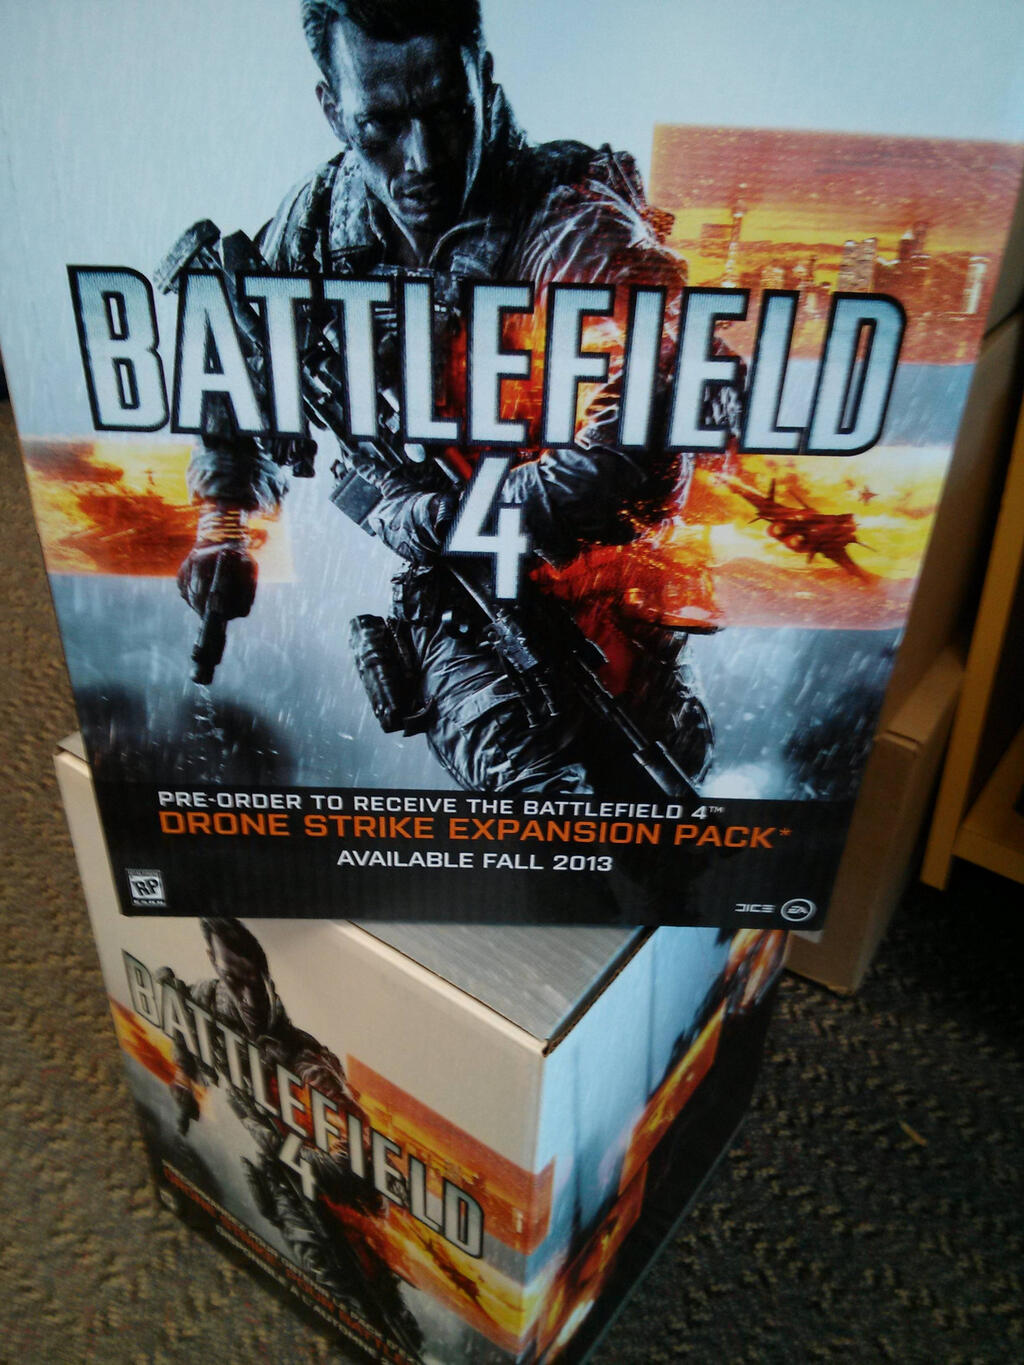 Battlefiled 4 28-03-13 001